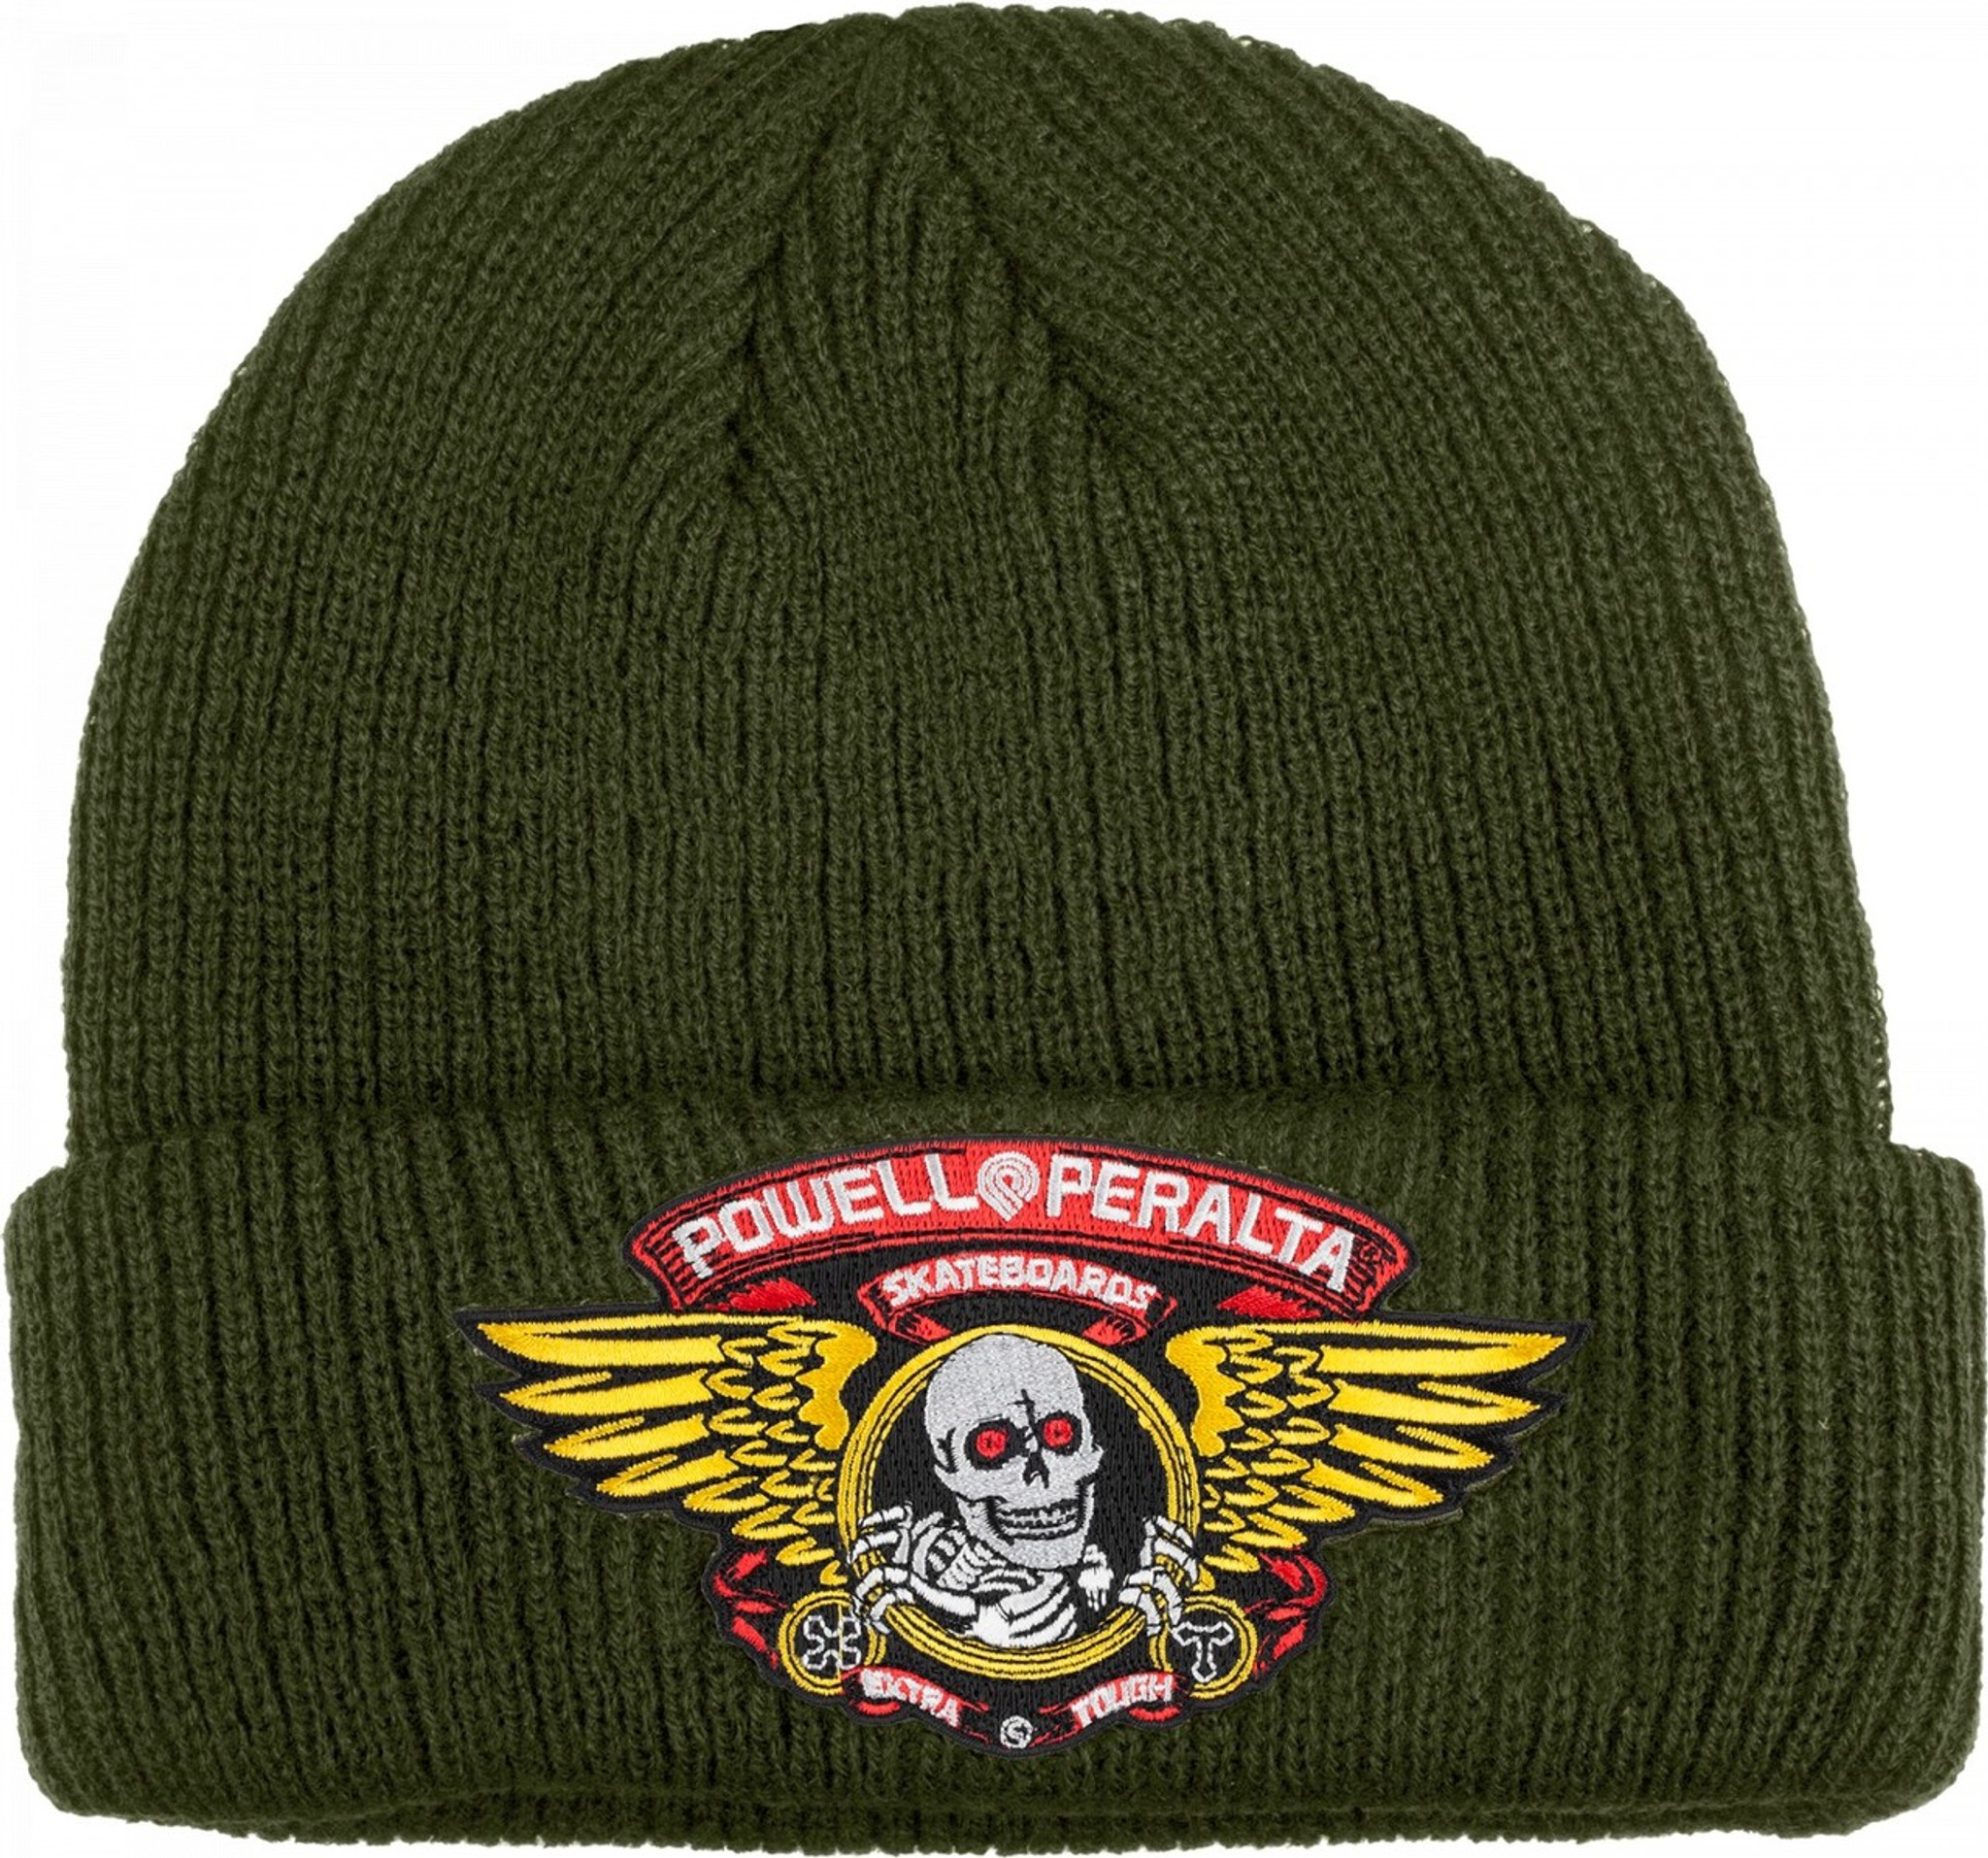 Powell Peralta Winged Ripper Beanie Hat Olive Green 8d7a9b3b40b